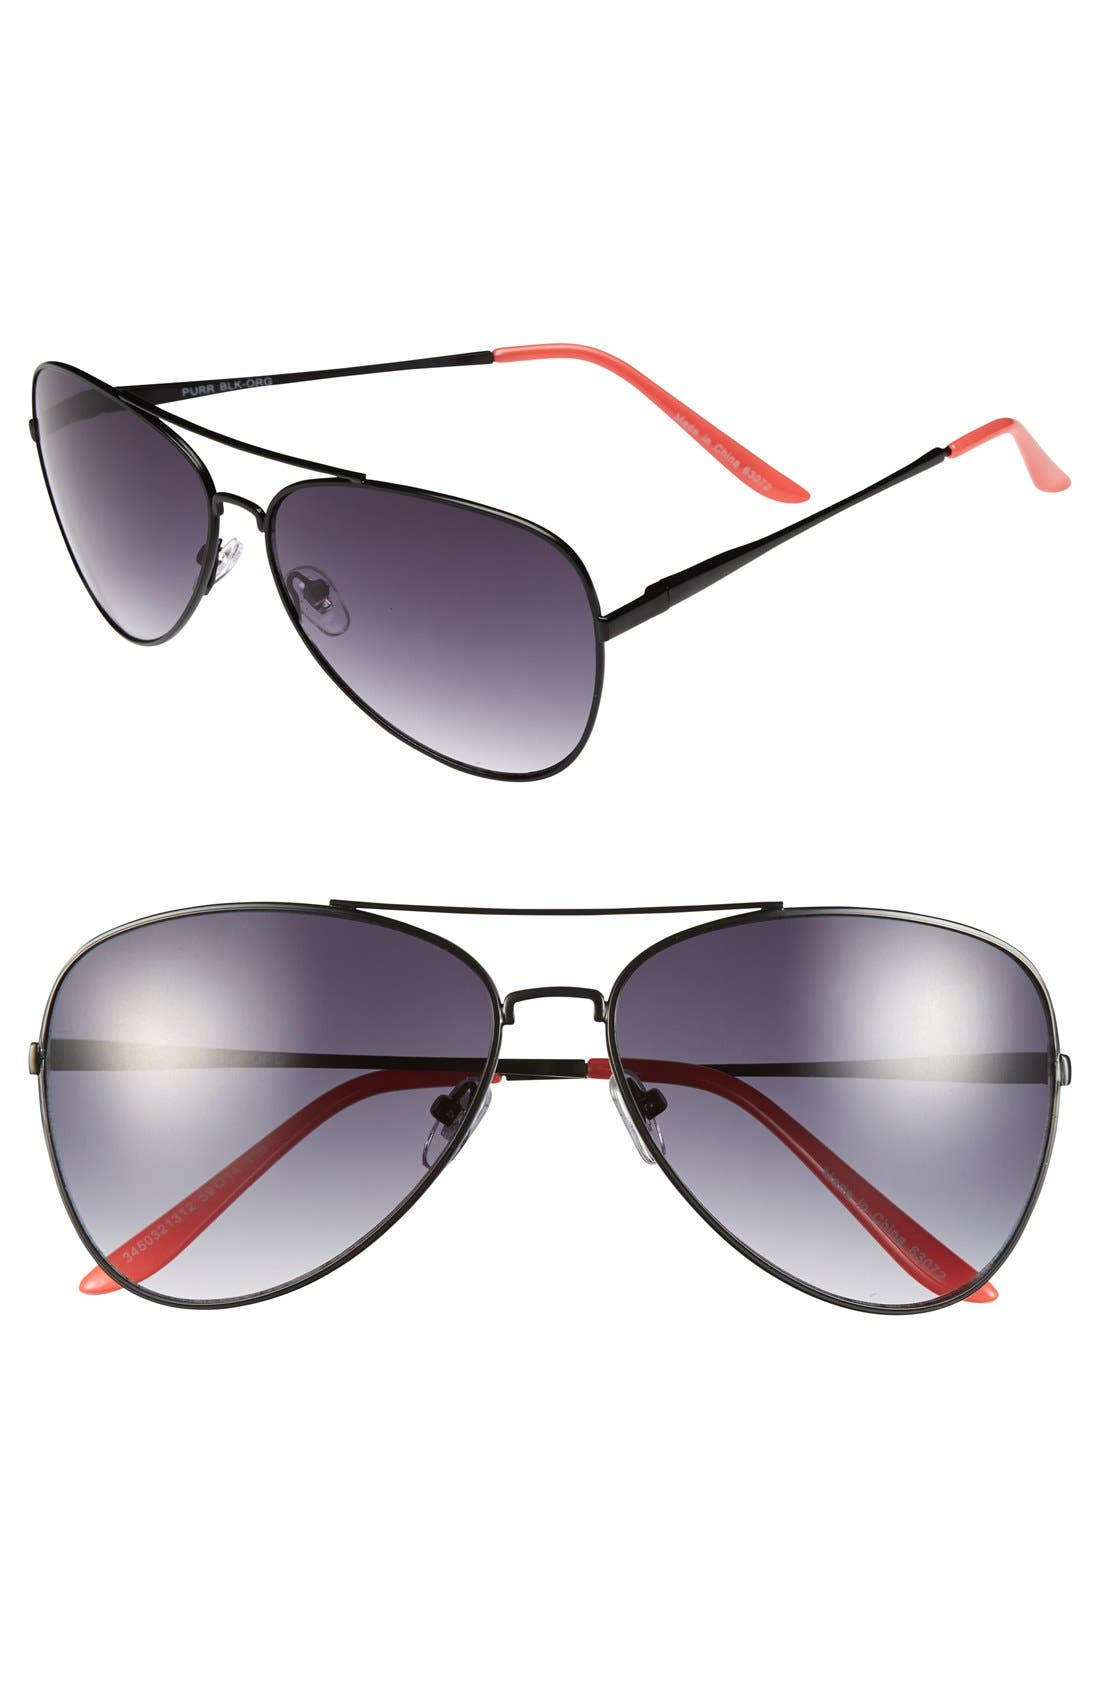 Alternate Image 1 Selected - Outlook Eyewear 'Purr' 59mm Aviator Sunglasses